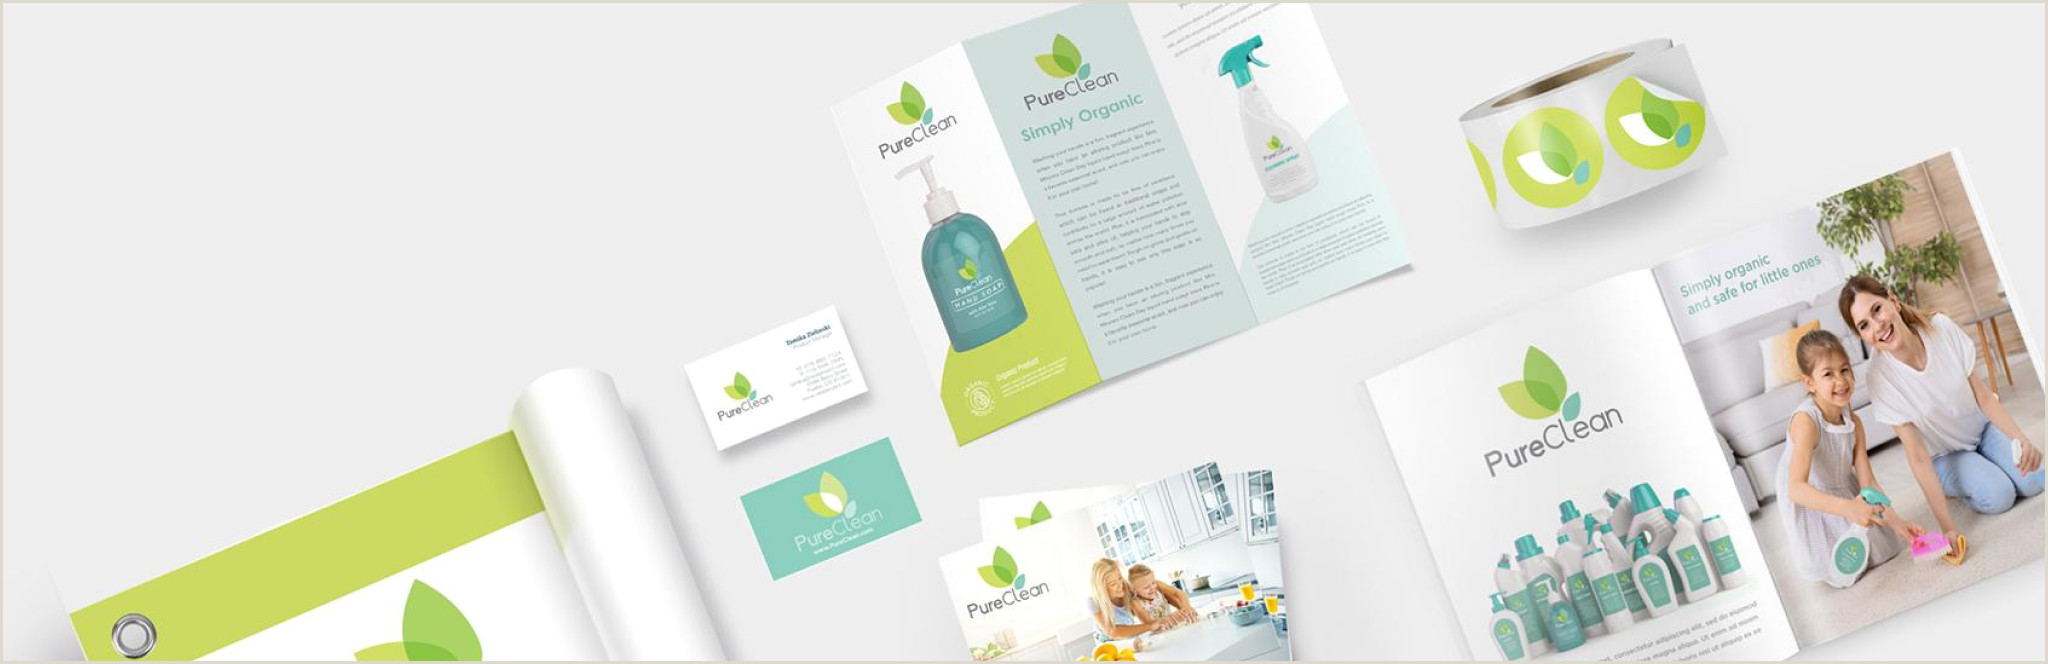 Online Business Card Design Printplace High Quality Line Printing Services